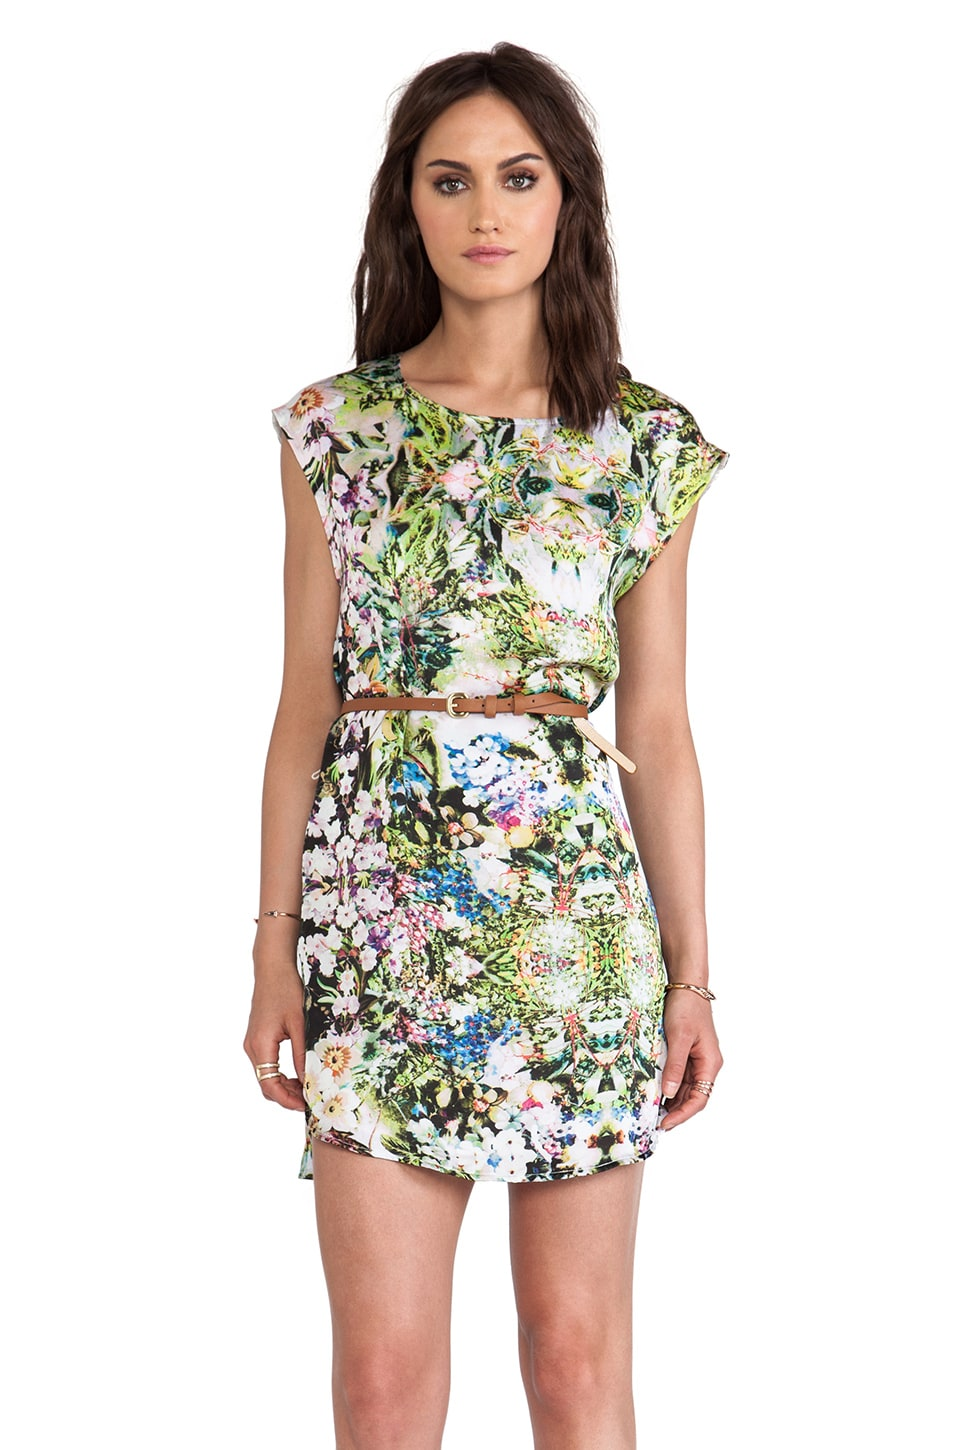 Ladakh Floral Frenzy Dress in Lime Mix